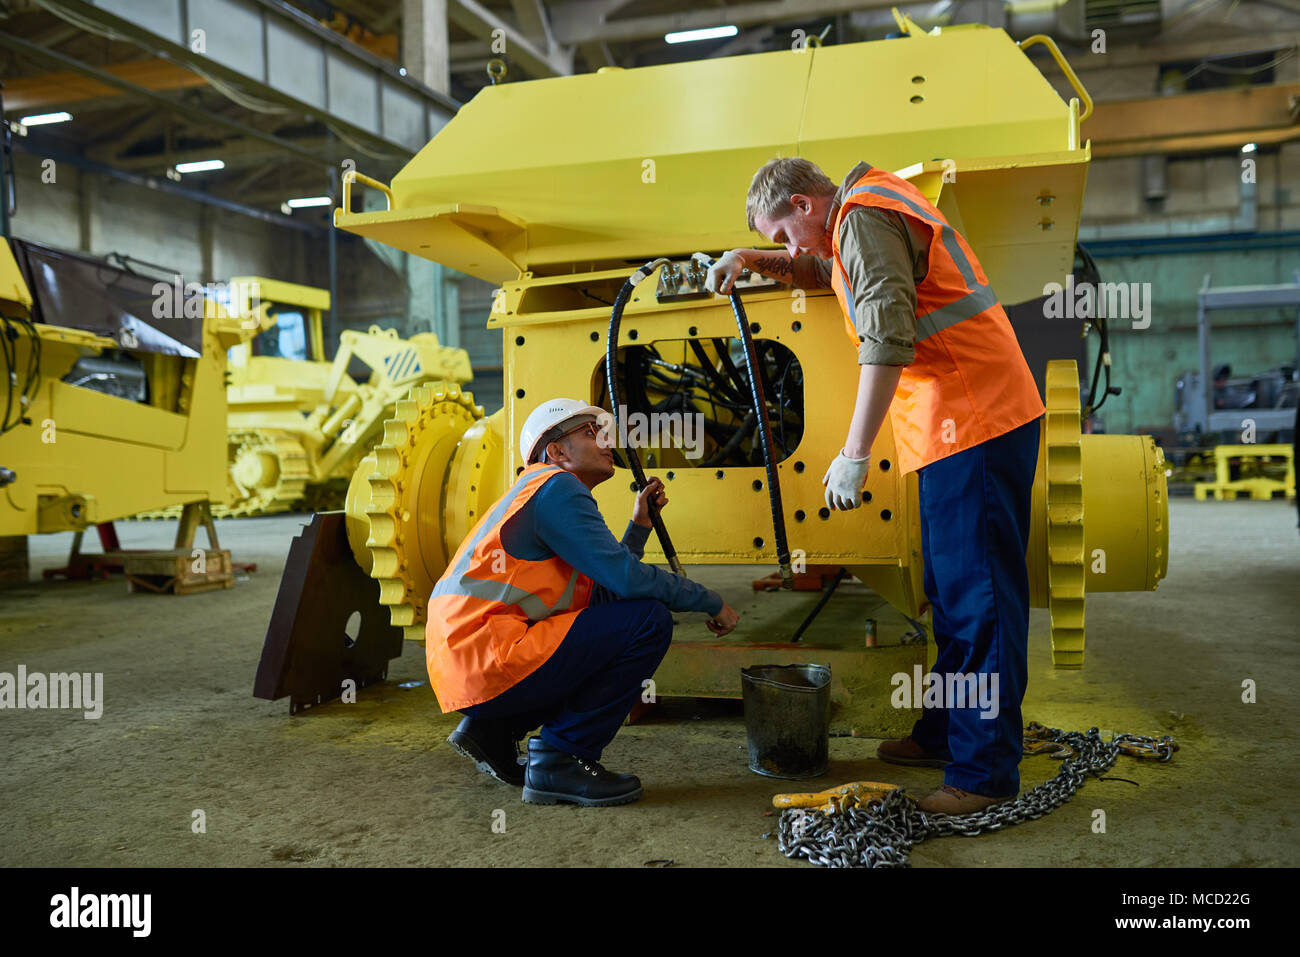 Adjusting Engine Features of Heavy Vehicle - Stock Image